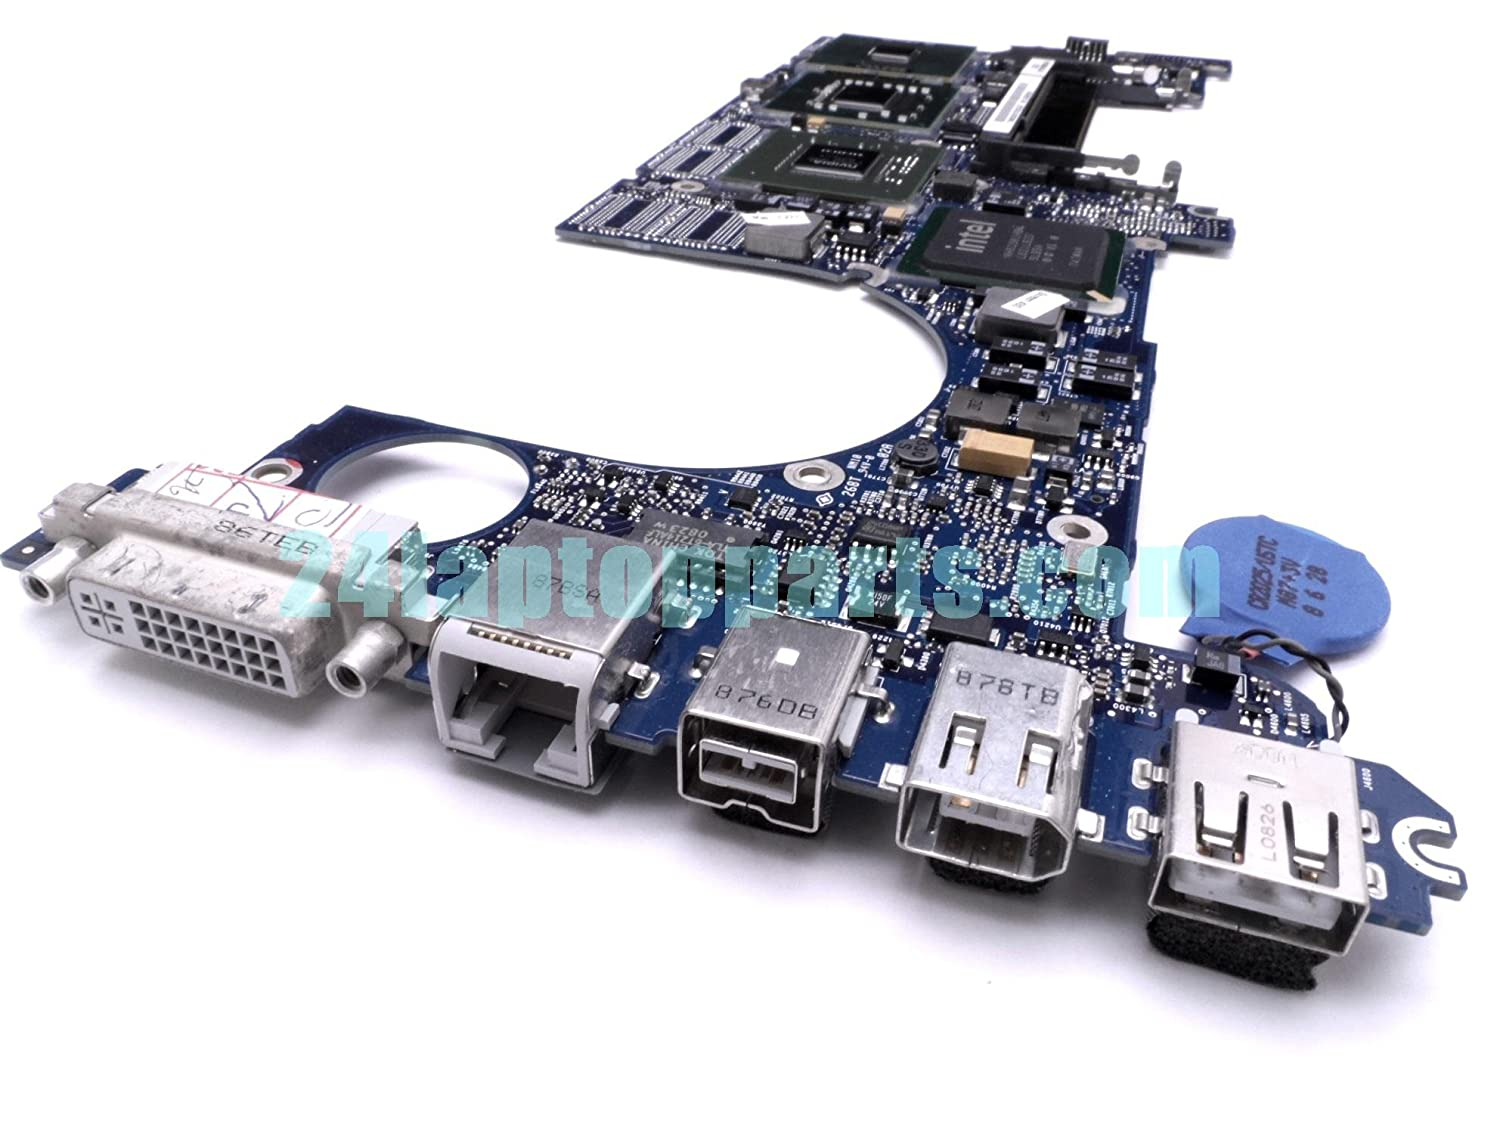 Macbook Pro Core 2 Duo 24 Ghz Logic Board 661 4960 2nd Try How To Find A Short Circuit In Computers Accessories